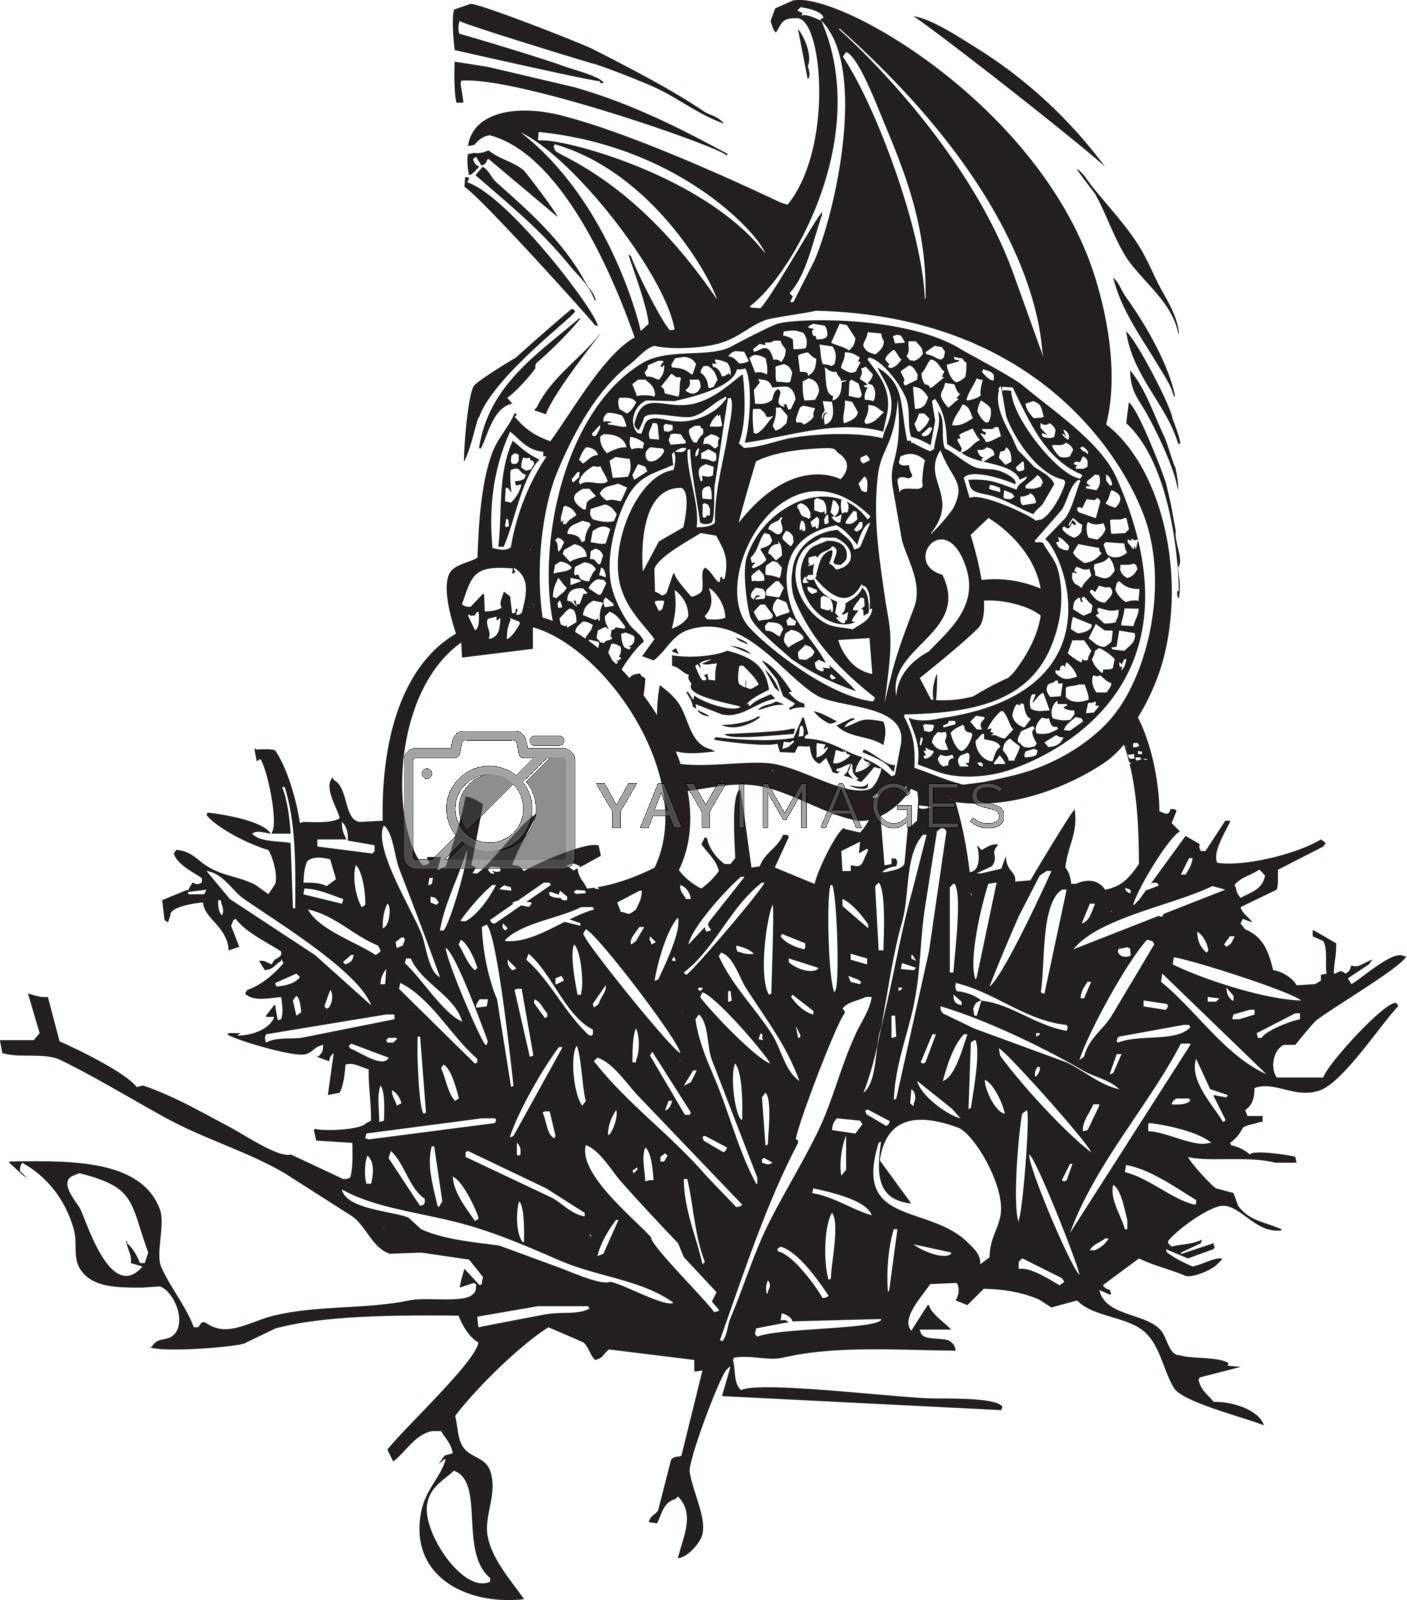 Woodcut style image of a dragon sleeping in a nest with eggs.